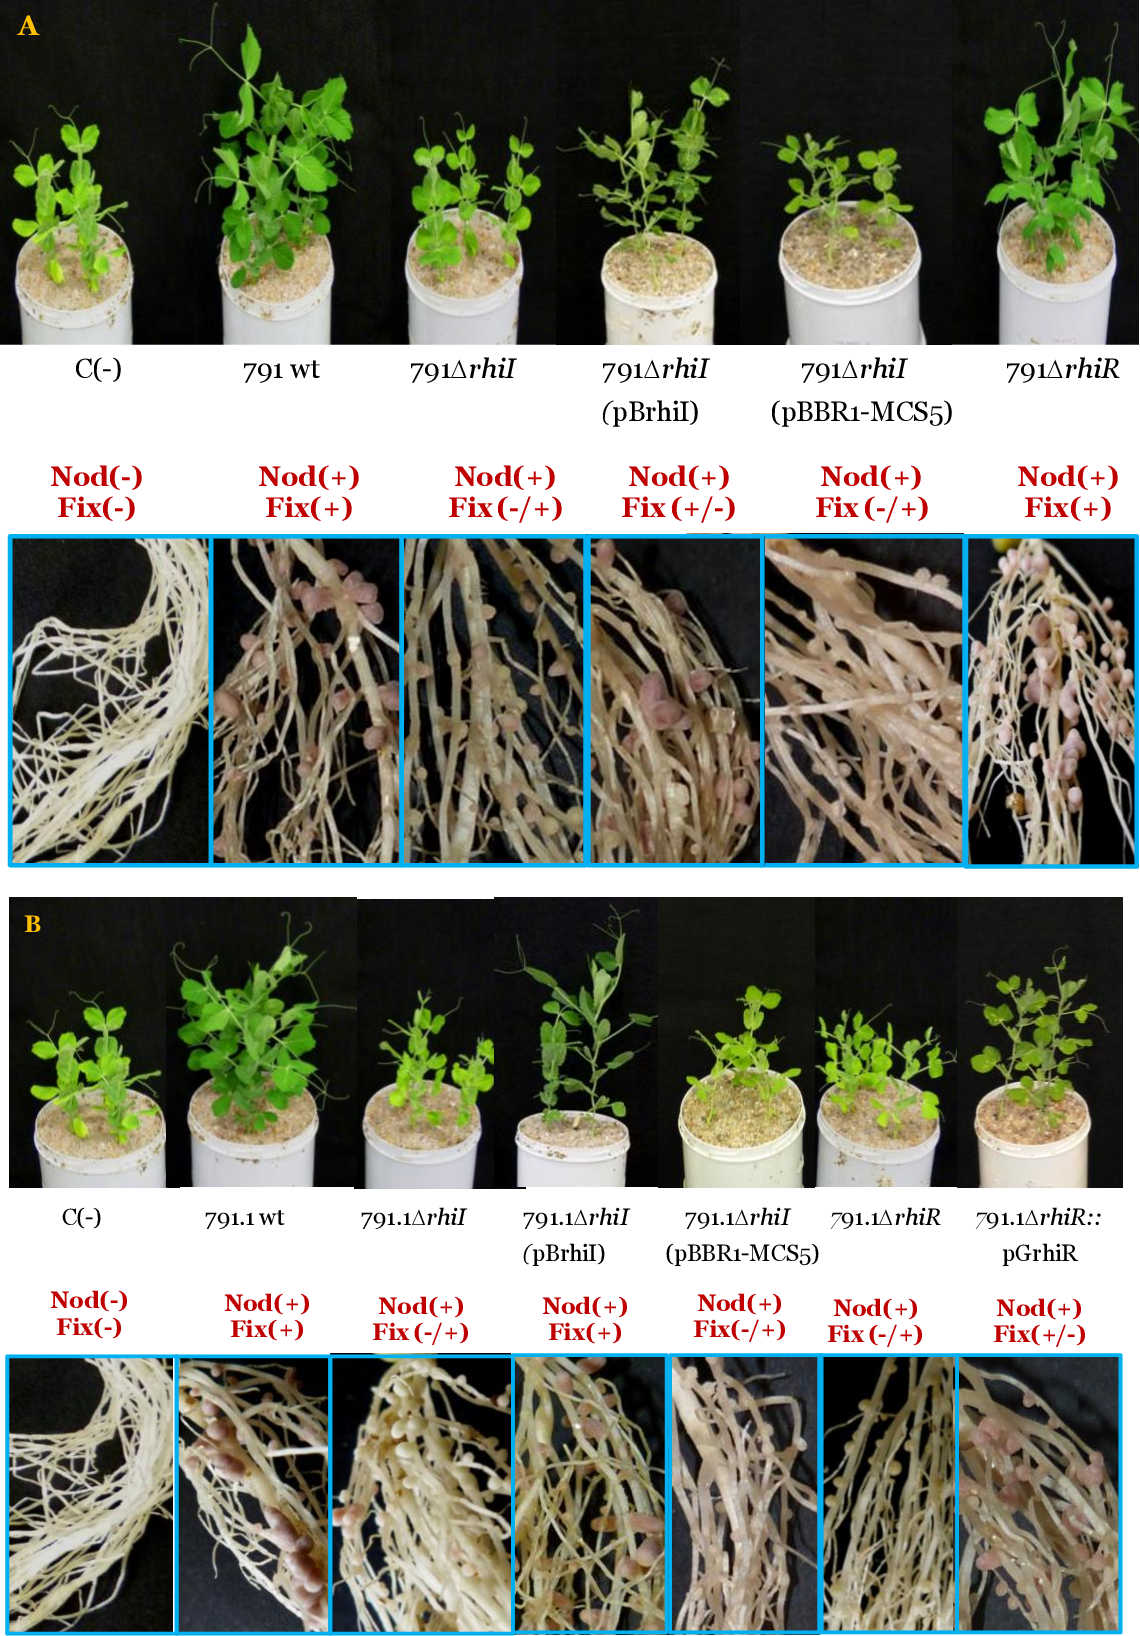 Figure 29. Effect of rhiI and rhiR genes on symbiotic performance of Rlv UPM791 (A) and Rlv UPM791.1 (B). Pictures shown on the top correspond to the aerial part of pea plants 21 days after inoculation with the indicated R. leguminosarum strains. Pictures shown below correspond to details of the corresponding root systems. Relevant symbiotic phenotypes are indicated.